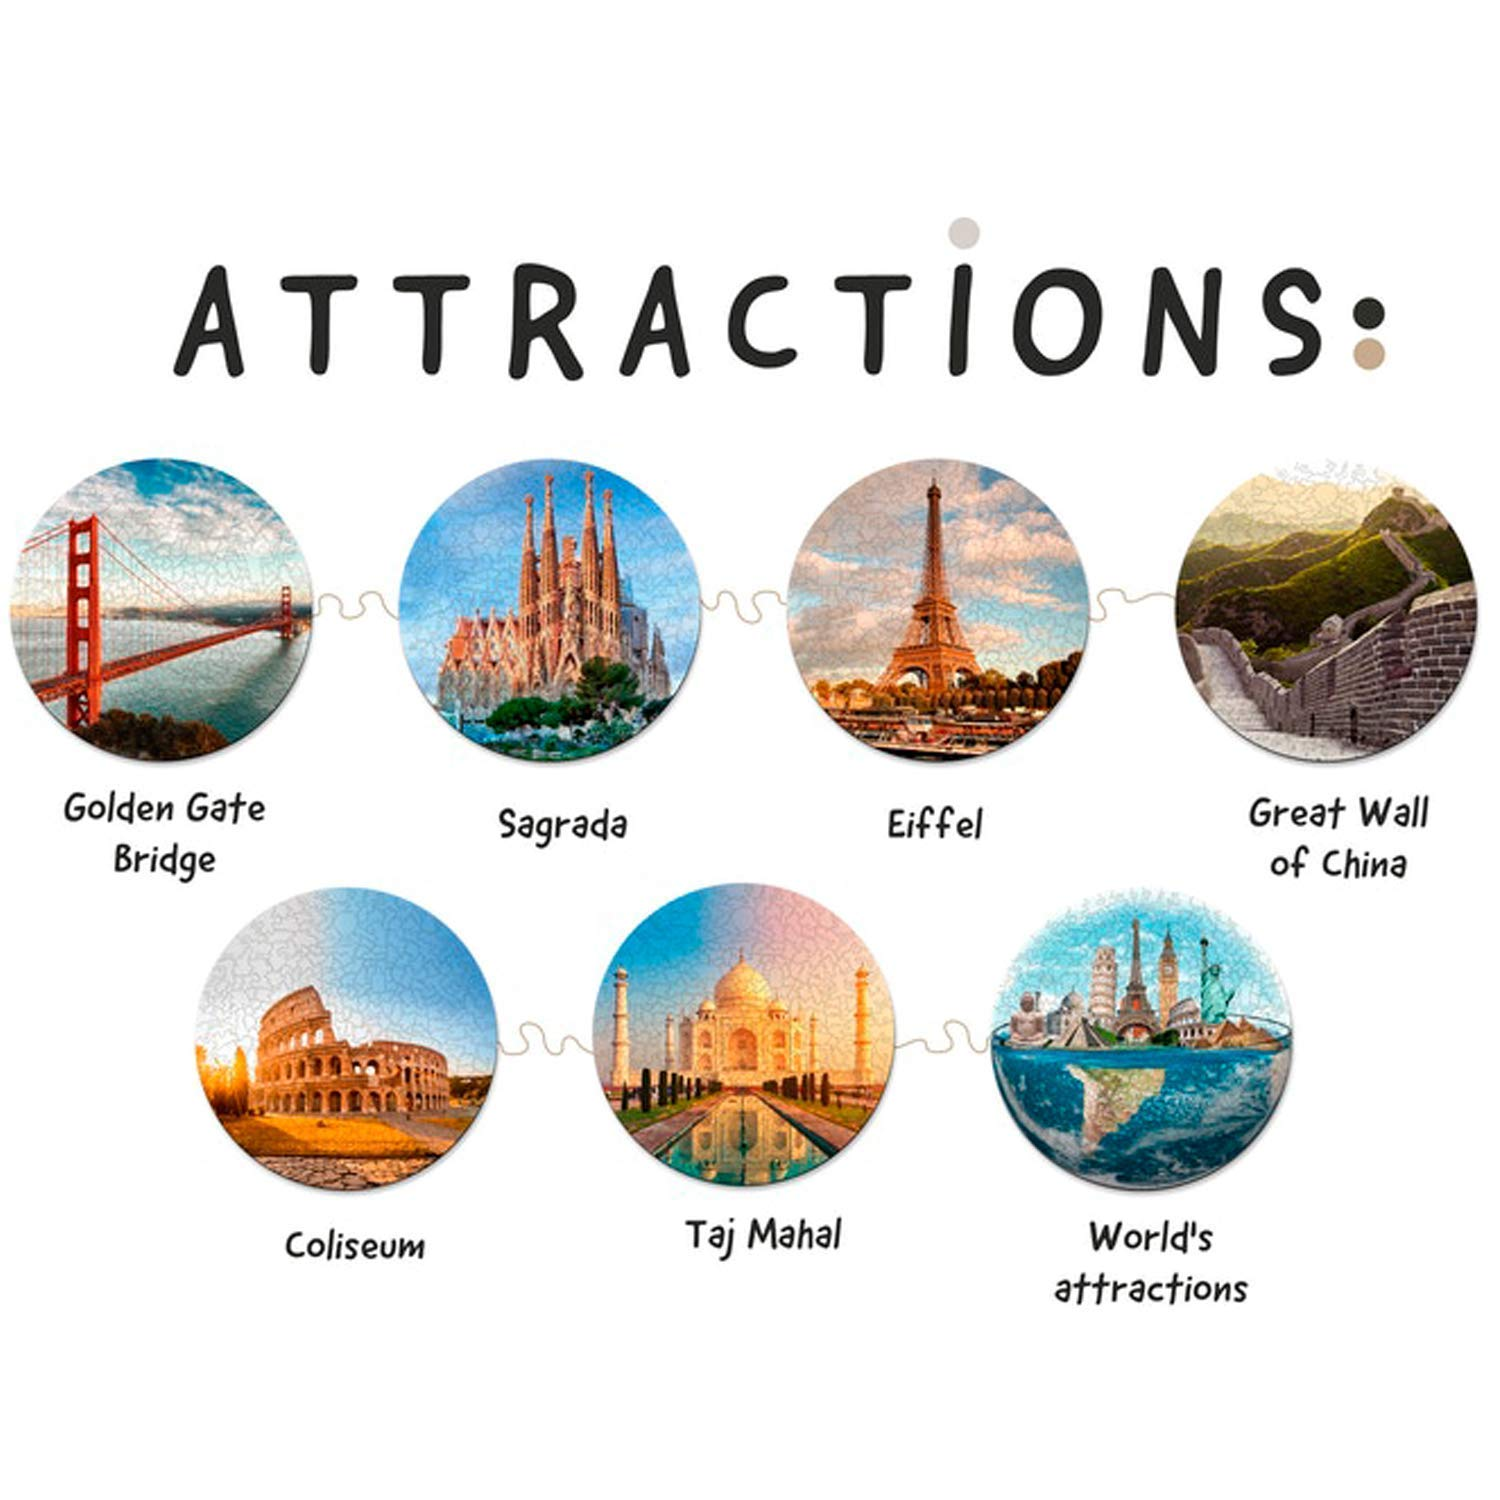 Gift for Travel Lover Unique Round Puzzles Golden Gate Bridge Attractions Wooden Jigsaw Puzzles For Adults Jigsaw Puzzle Games Wall Decor Best Christmas Gifts